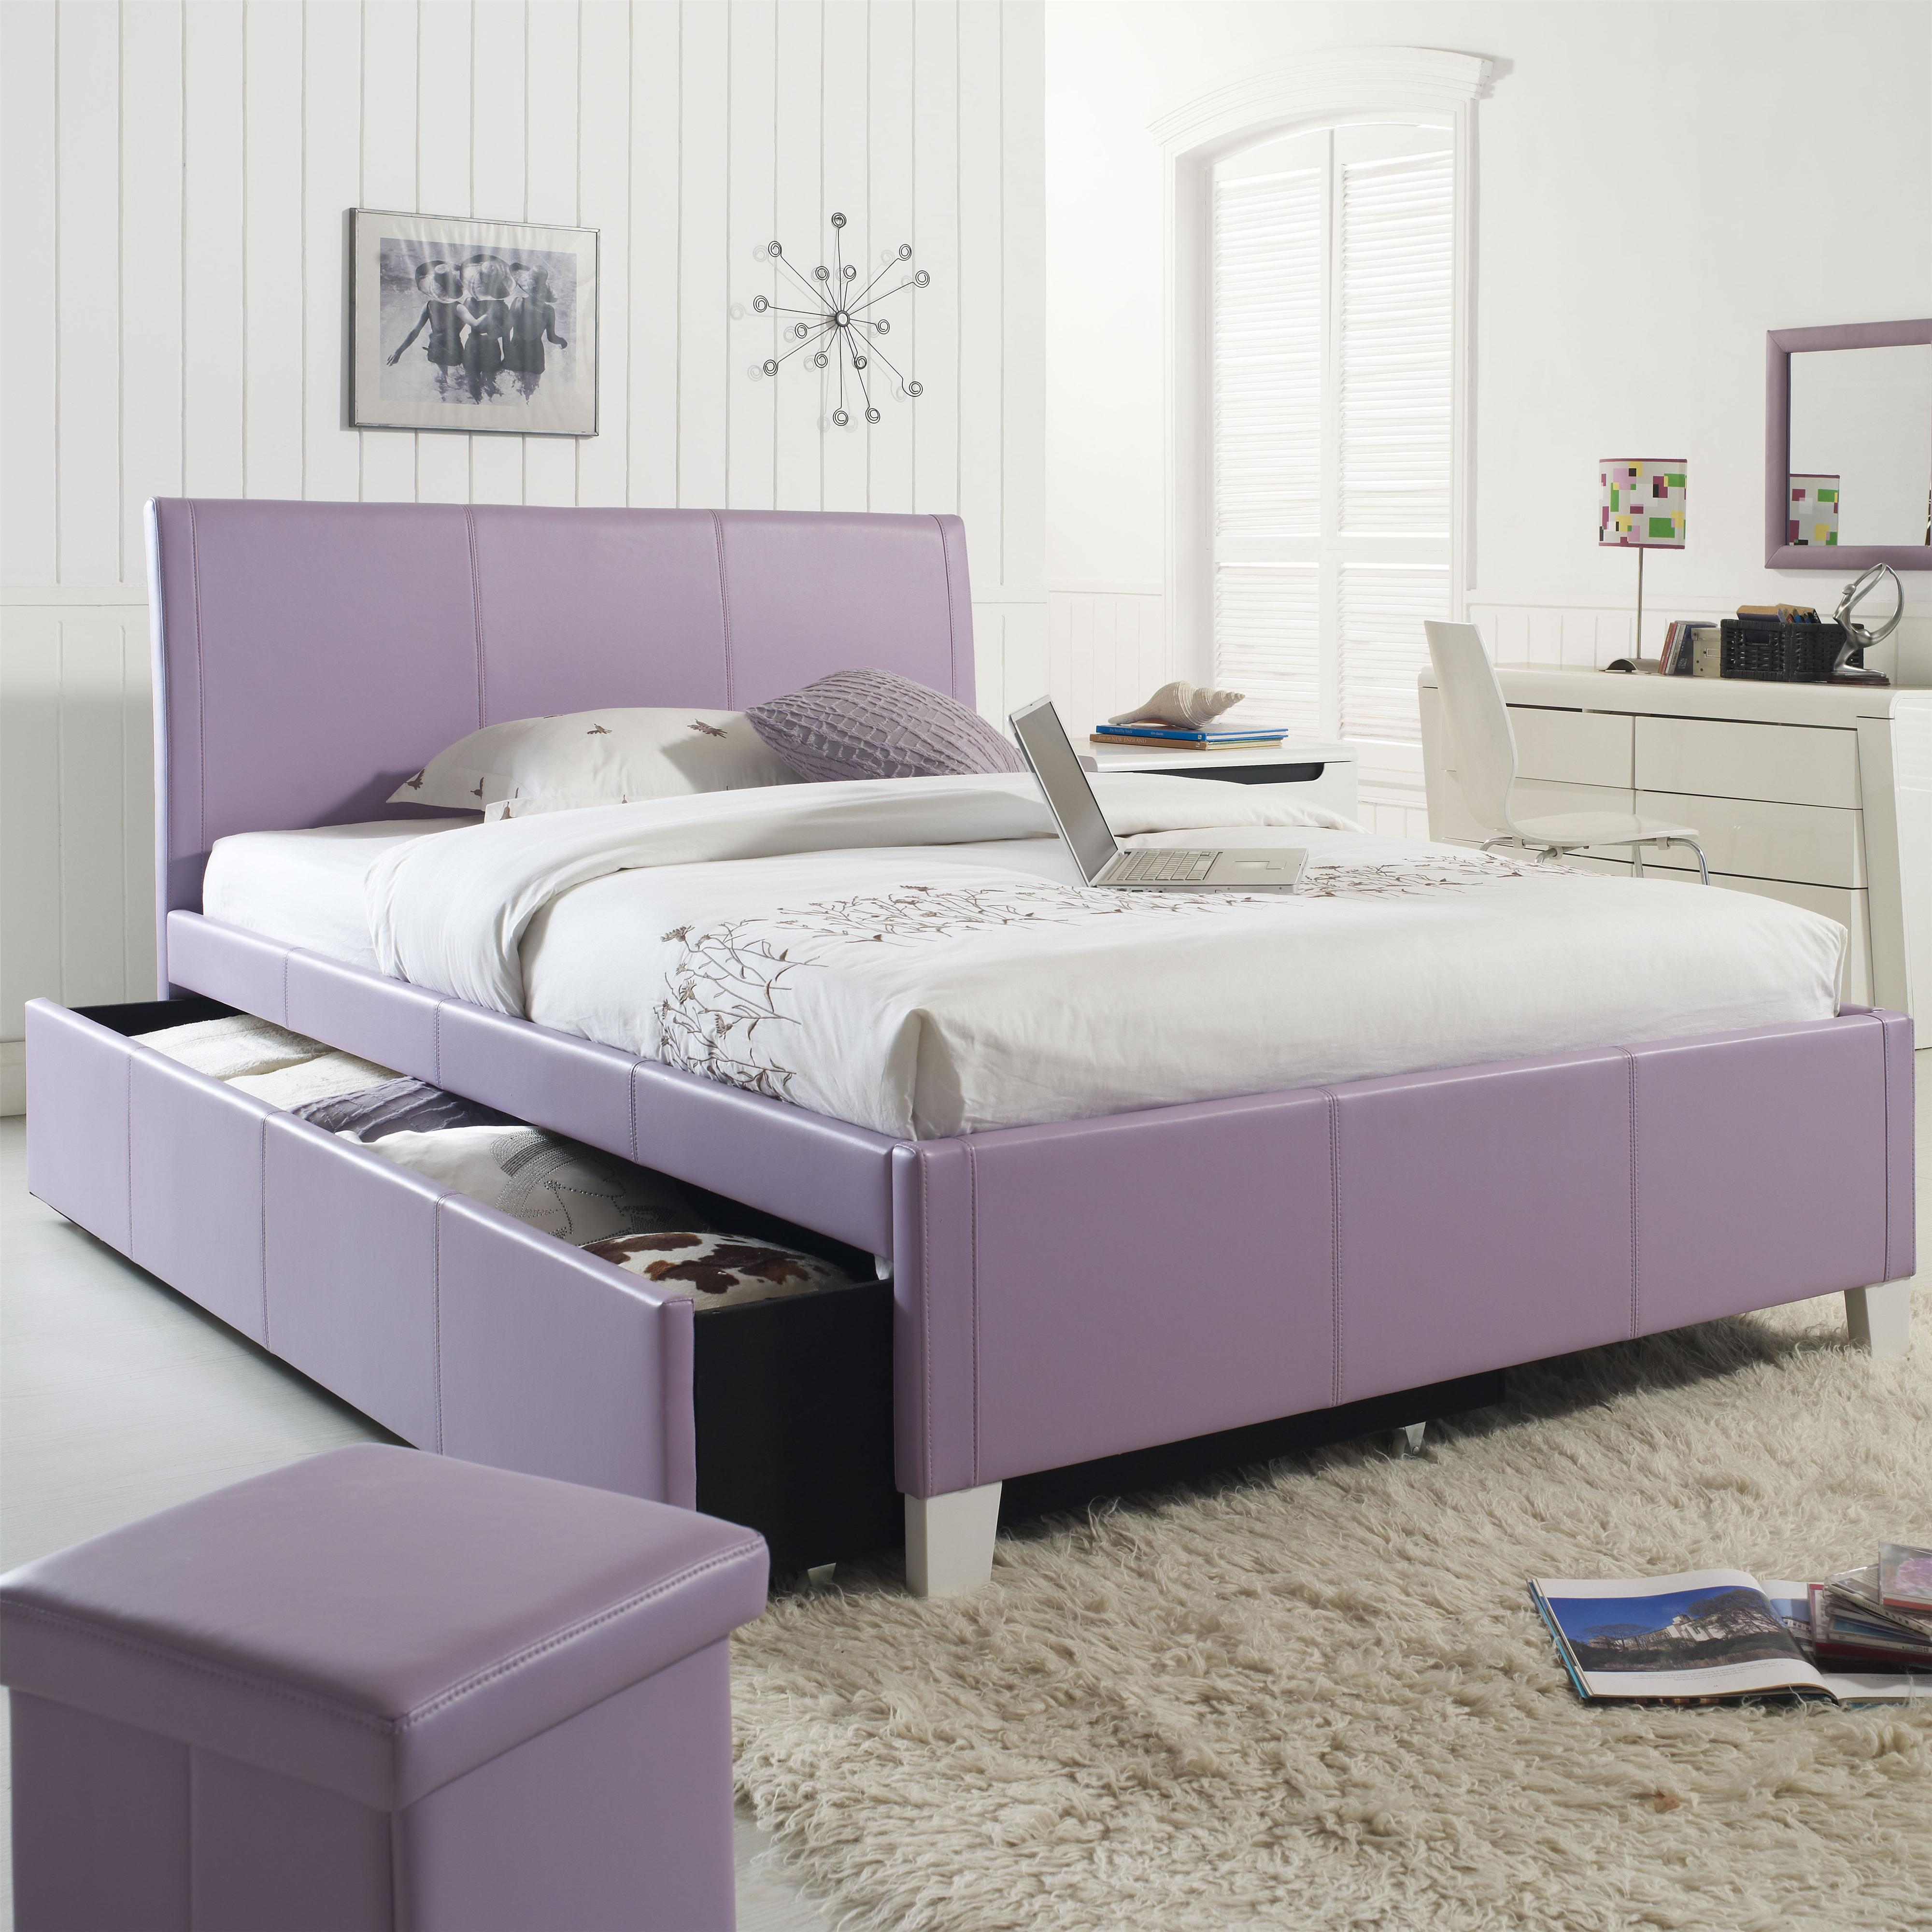 Standard Furniture Fantasia Twin Upholstered Trundle Bed - Item Number: 60768+69